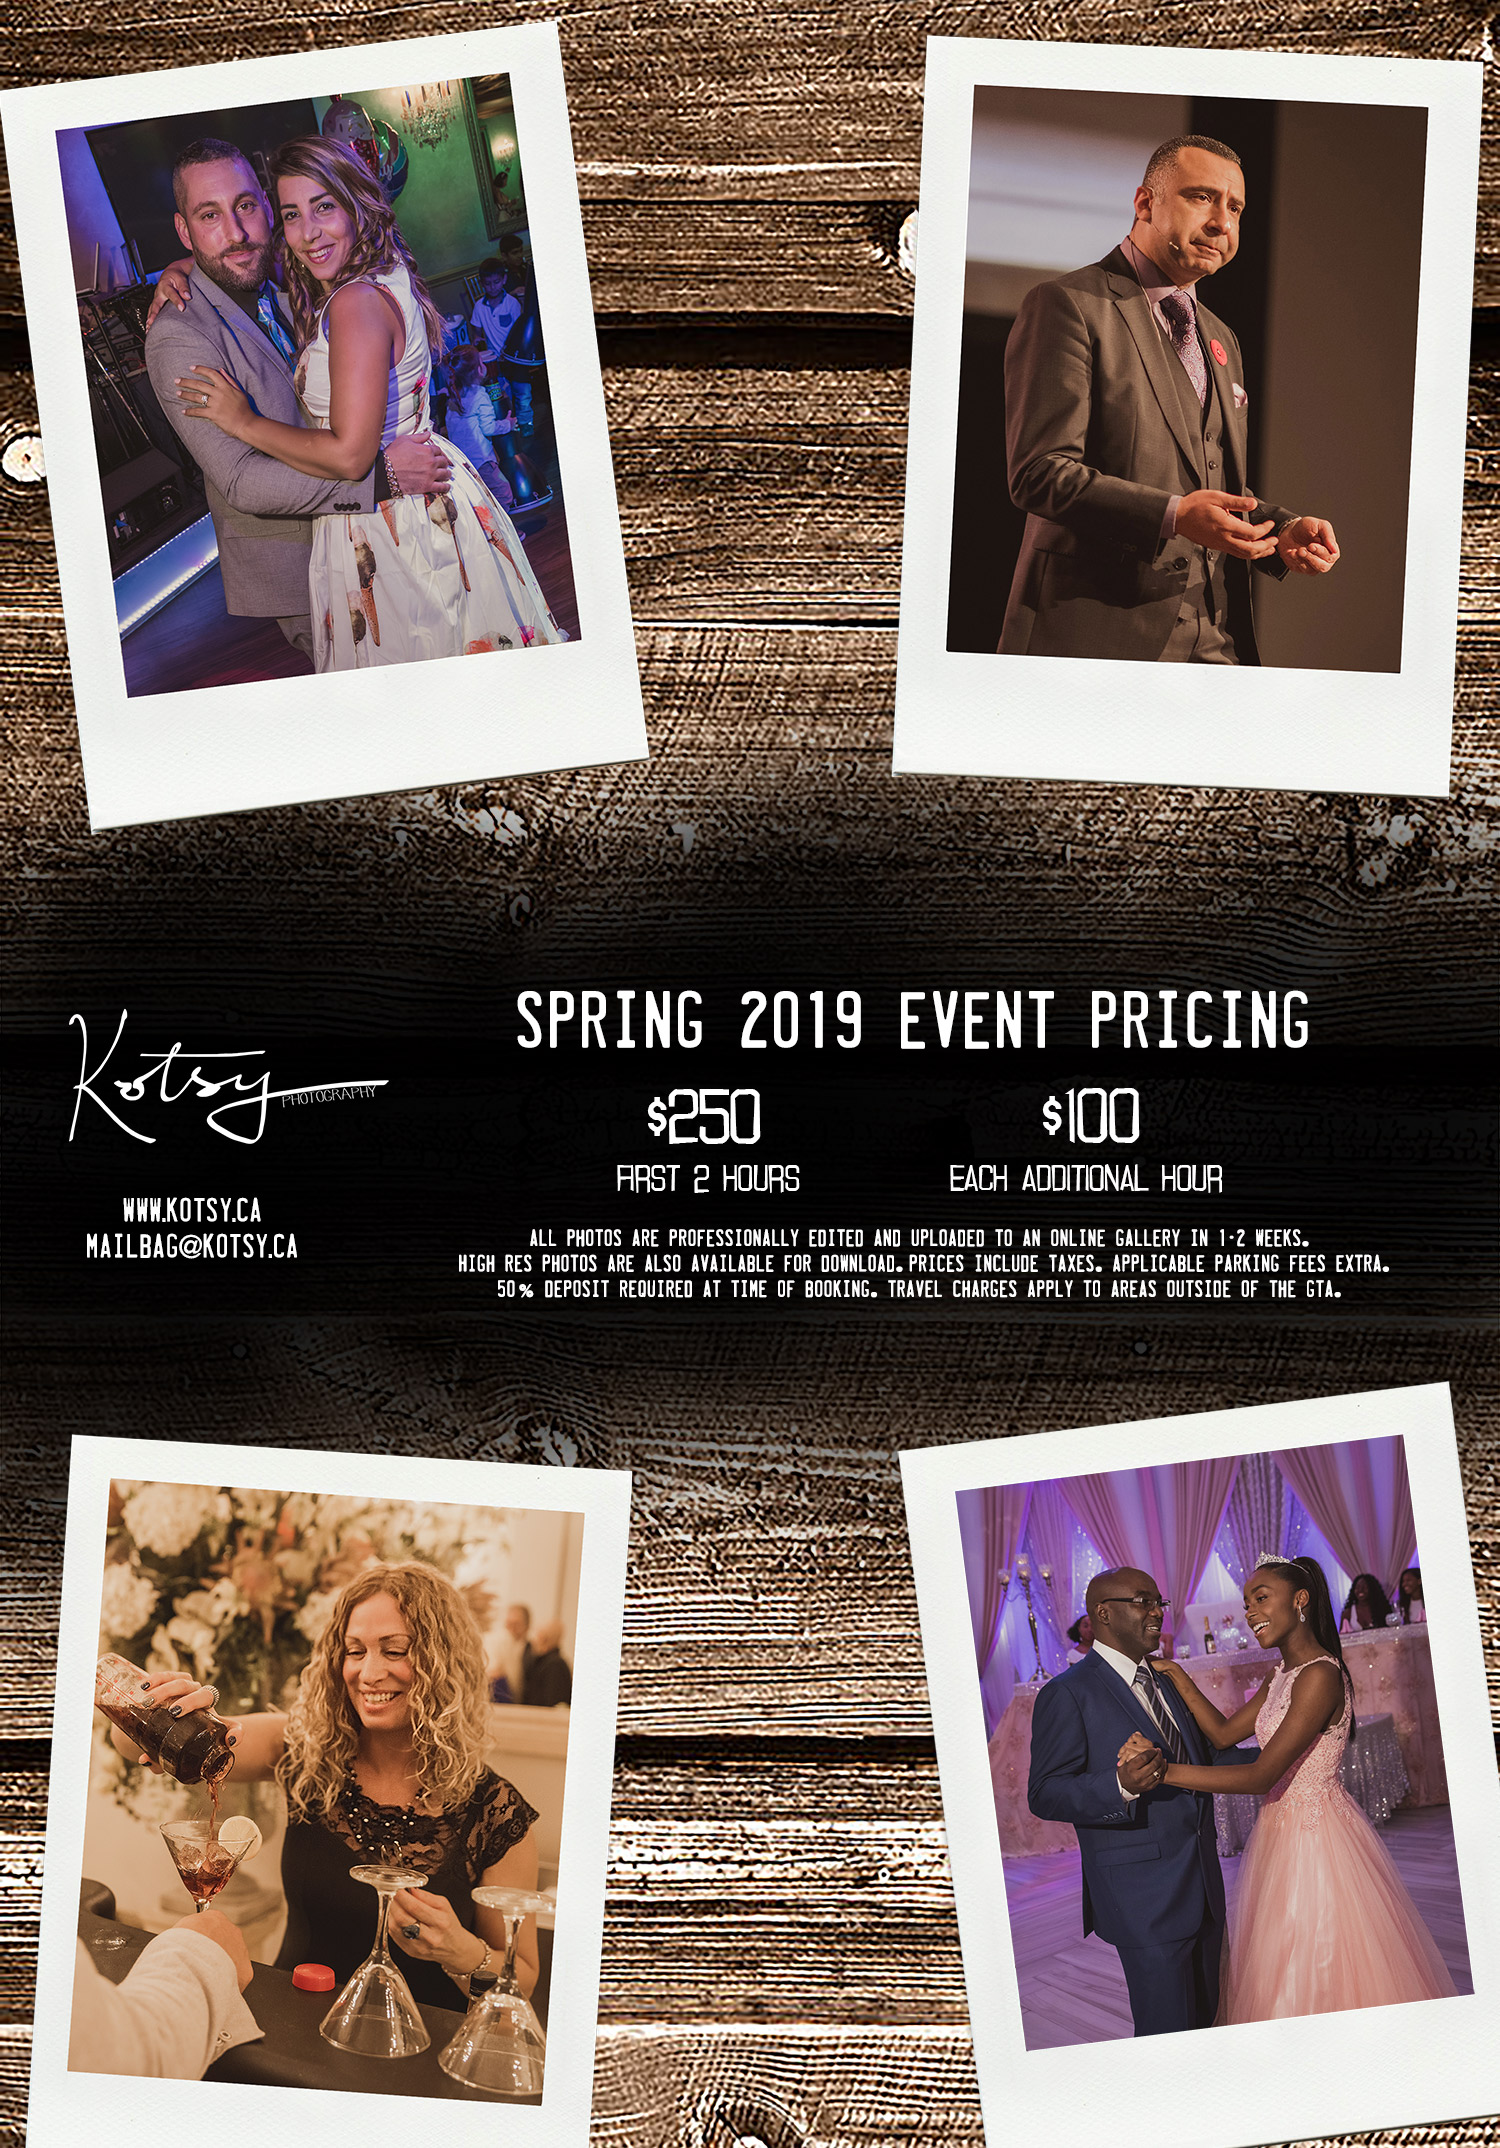 Spring 2019 Event Pricing  $250 - First 2 hours  $100 - Each Additional Hour   All photos are professionally edited and uploaded to an online gallery in 1-2 weeks. High res photos are also available for download. Prices include taxes. Applicable parking fees extra. 50% deposit required at time of booking. Travel charges apply to areas outside of the GTA.